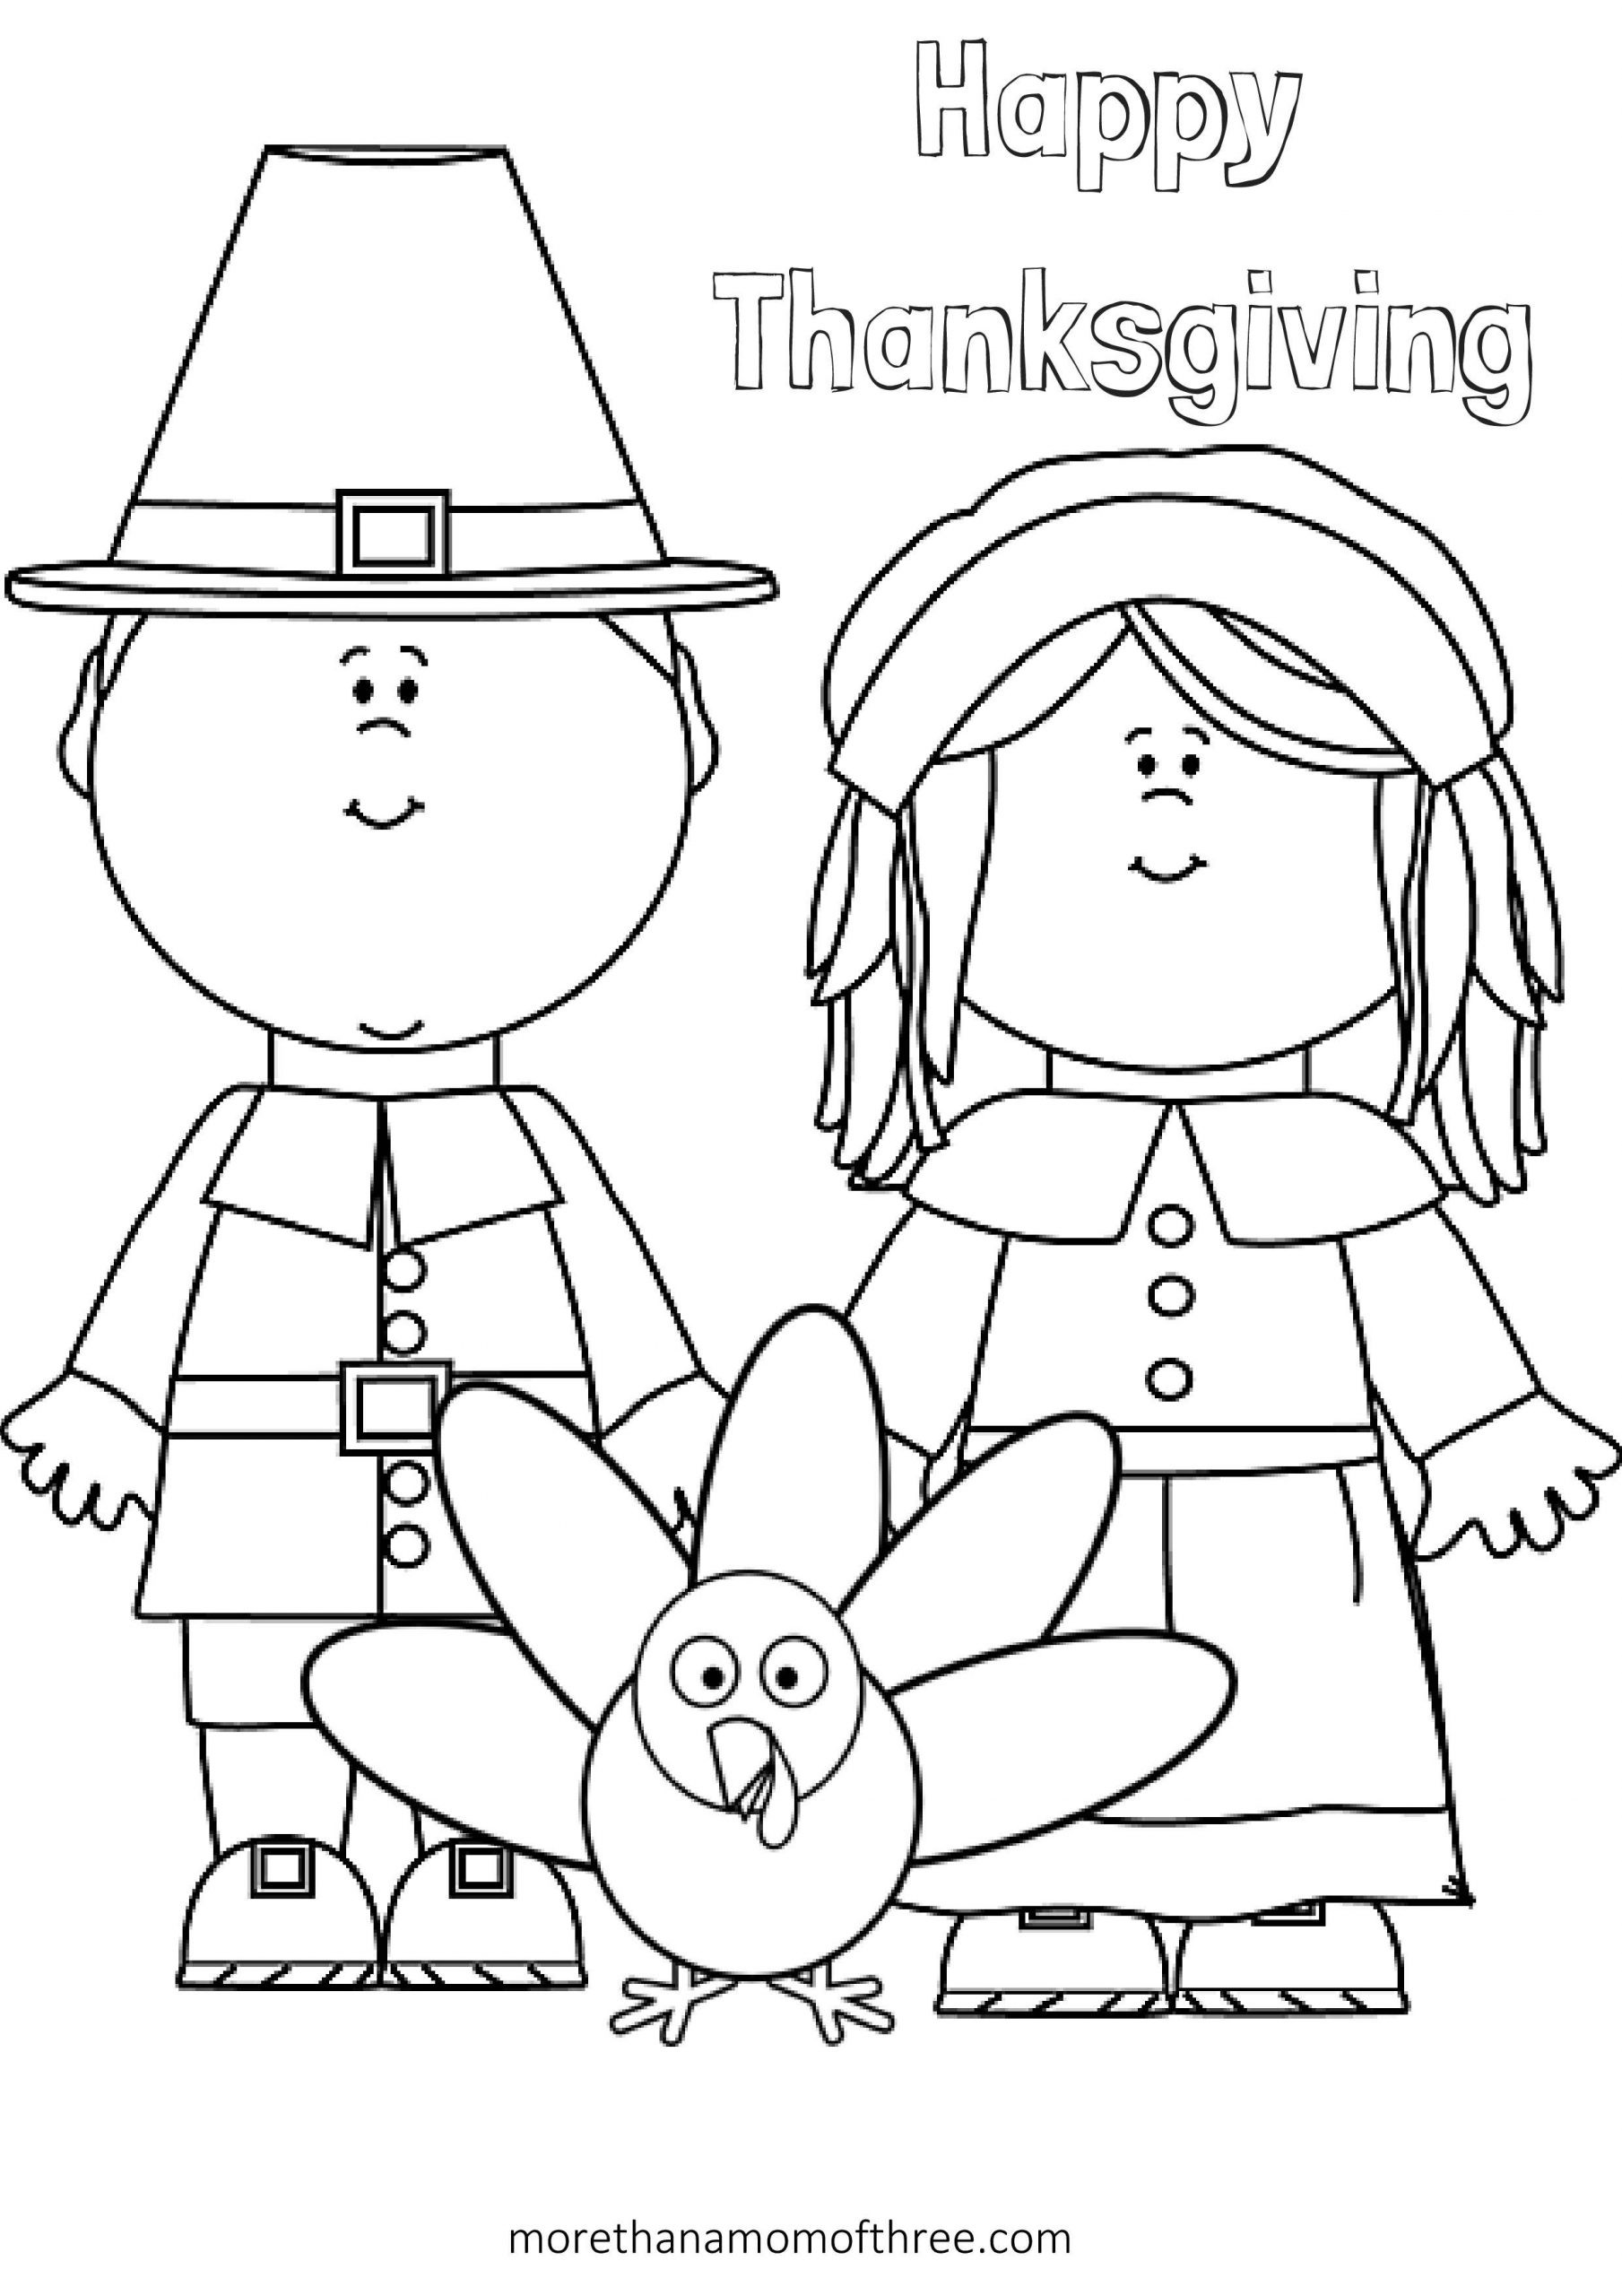 Thanksgiving Math Coloring Worksheets 54 Thanksgiving Coloring Pages Image Ideas – Haramiran